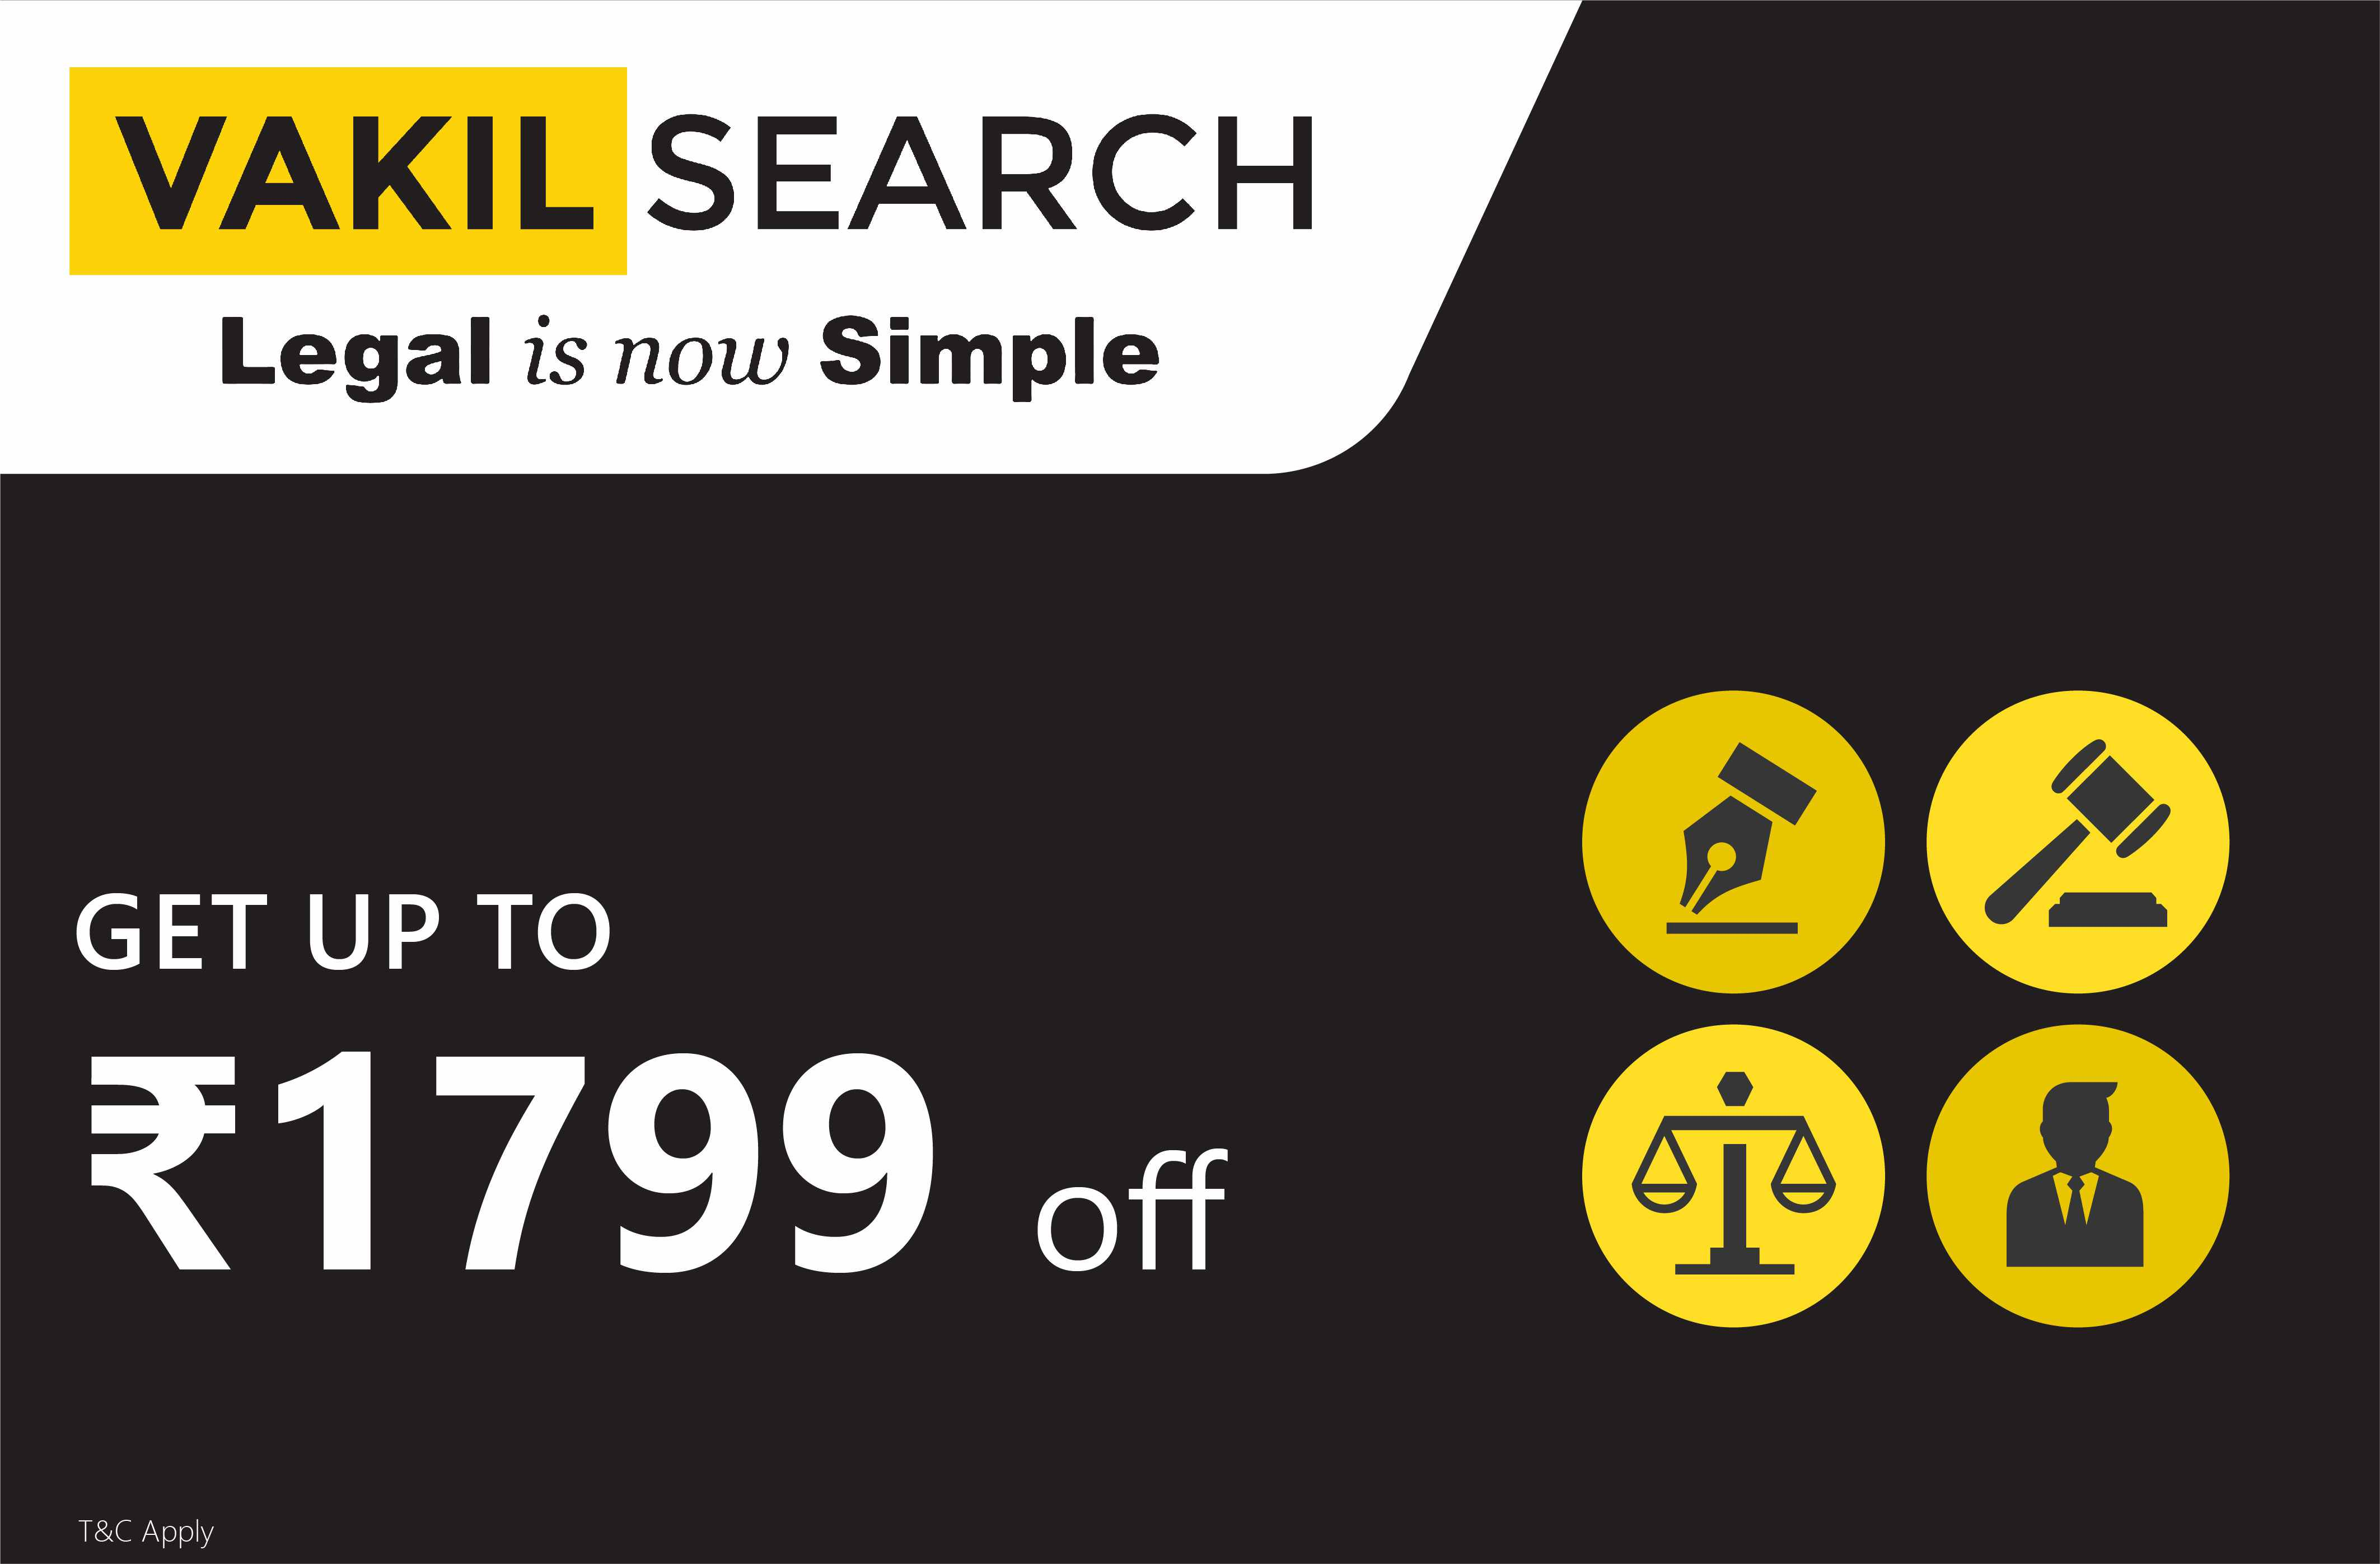 Upto Rs.1799 off on Legal, Compliance & Tax Services